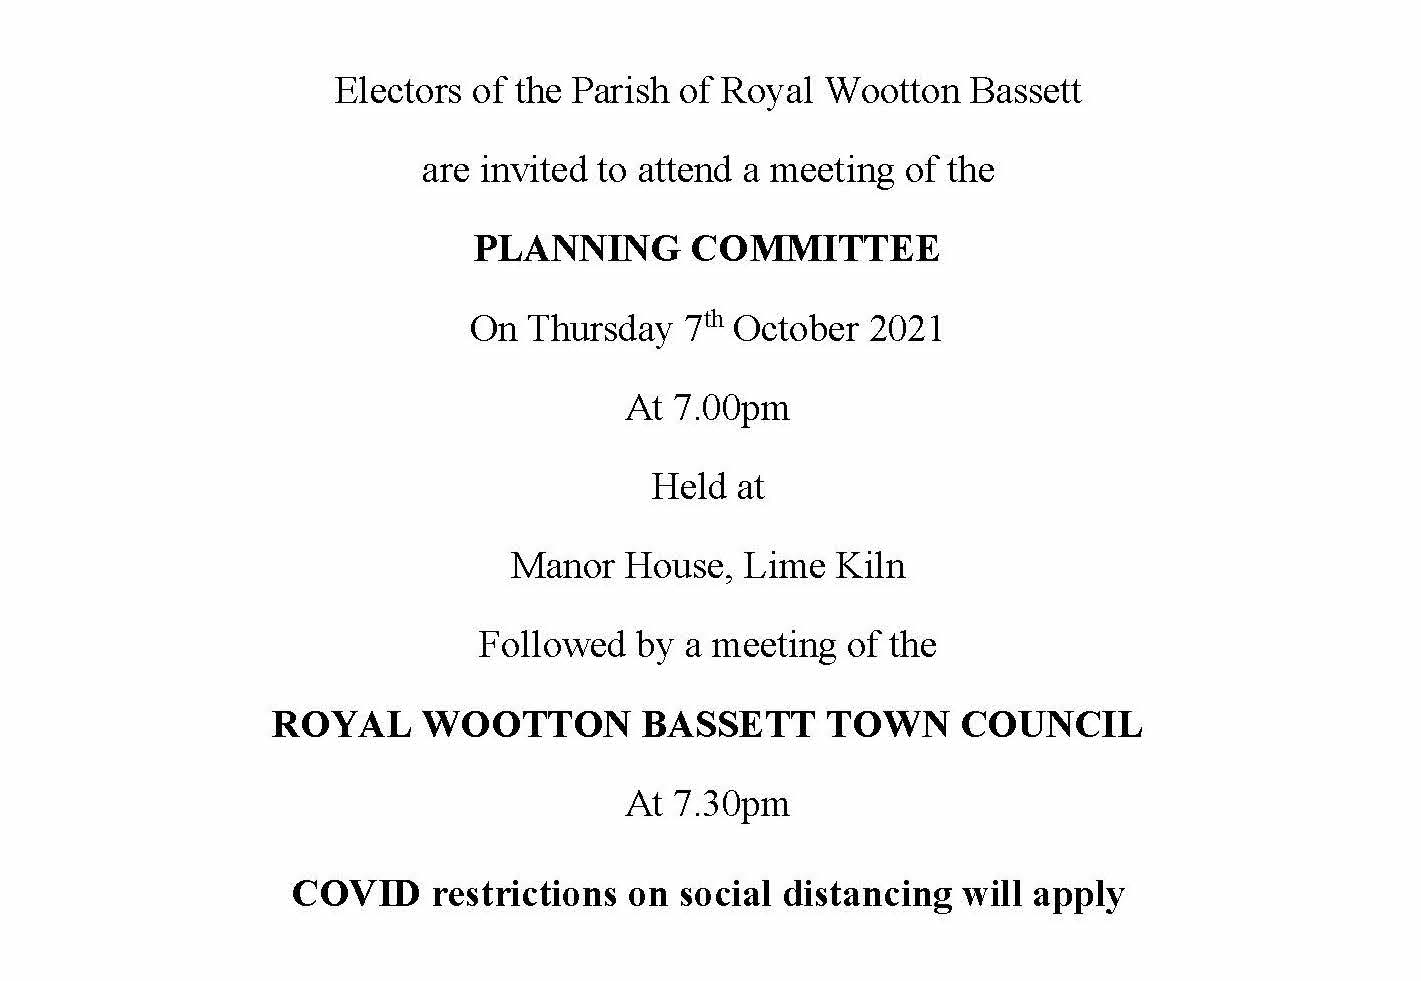 Full Council Meeting Notice 07 10 2021